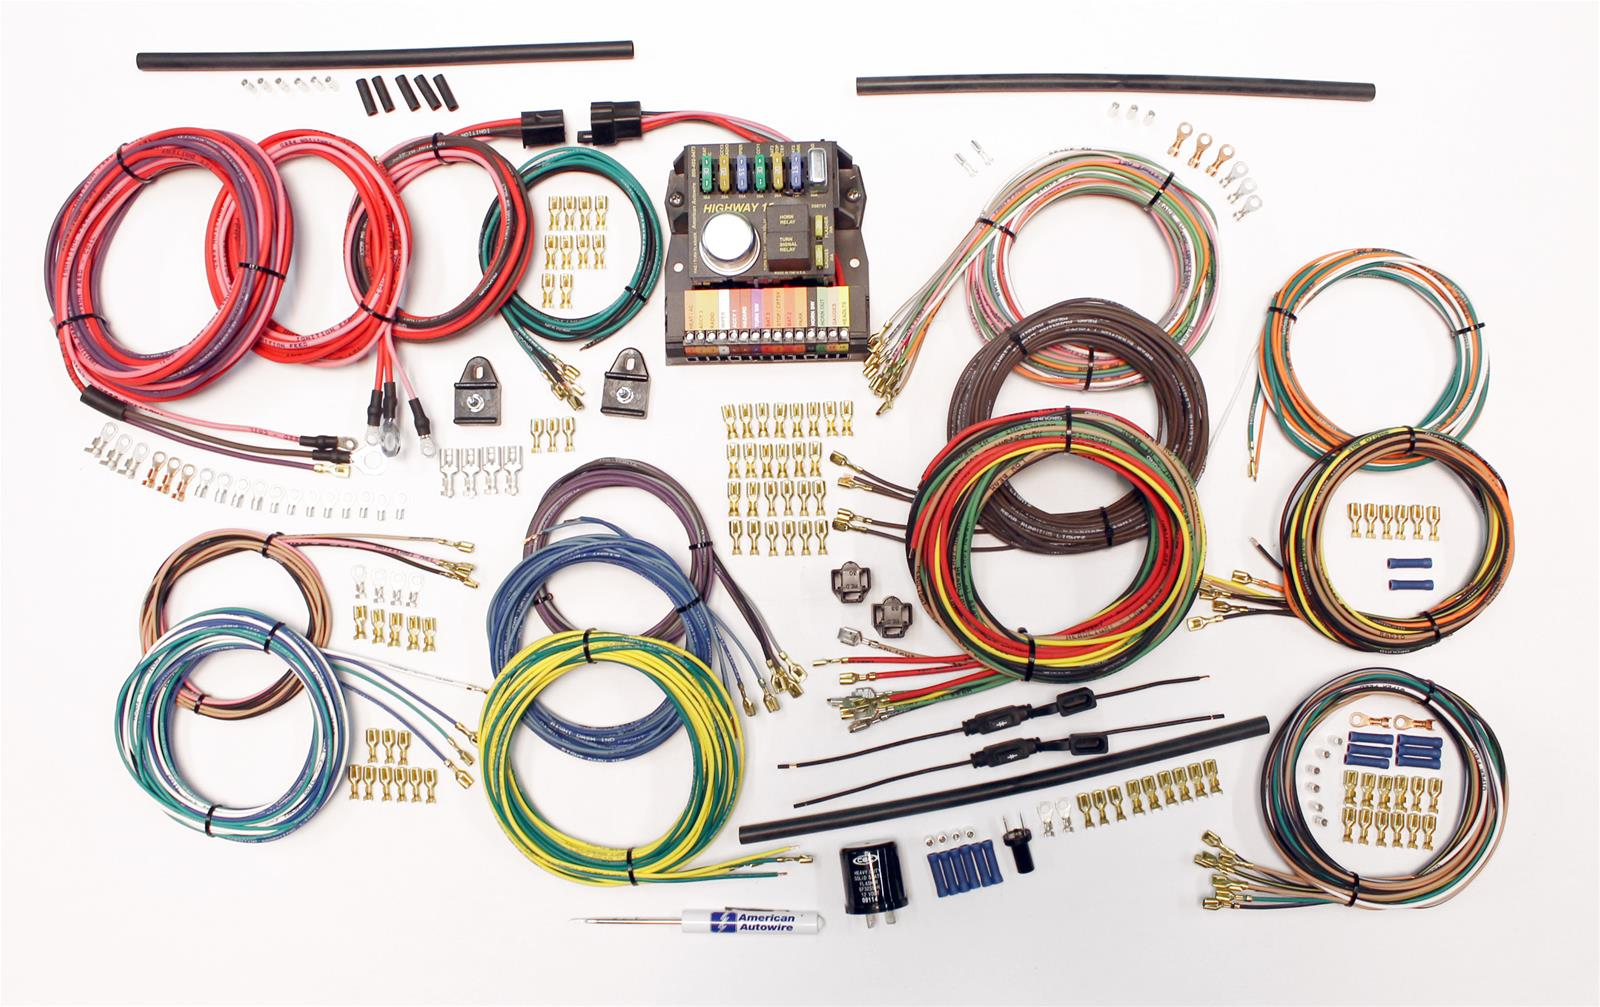 hight resolution of american autowire classic update series wiring harness kits 510419american autowire classic update series wiring harness kits